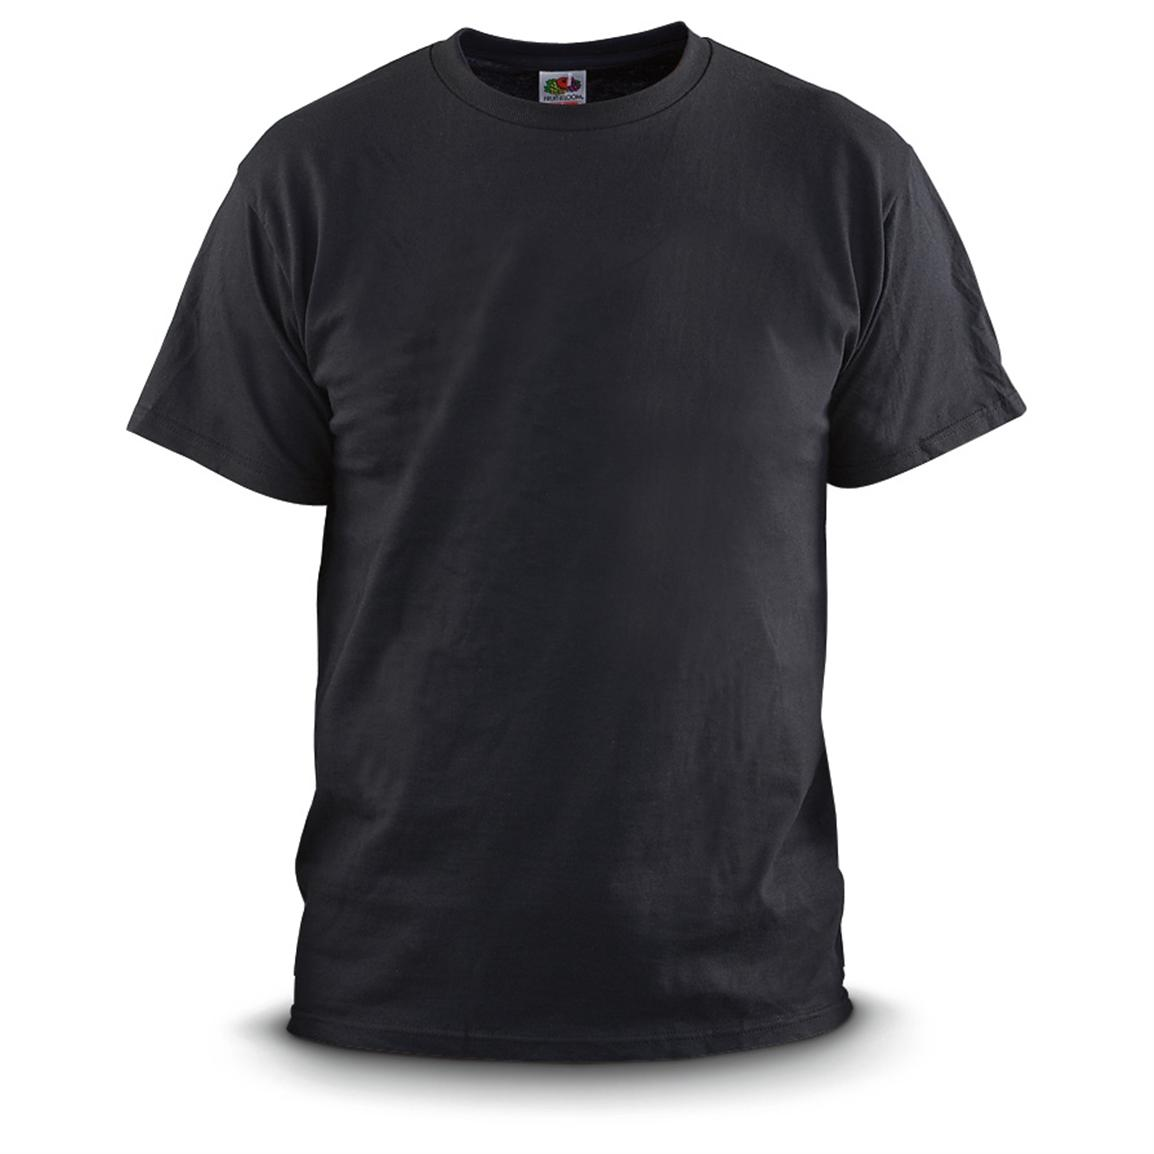 6 New U.S. Military Surplus T-shirts, Black